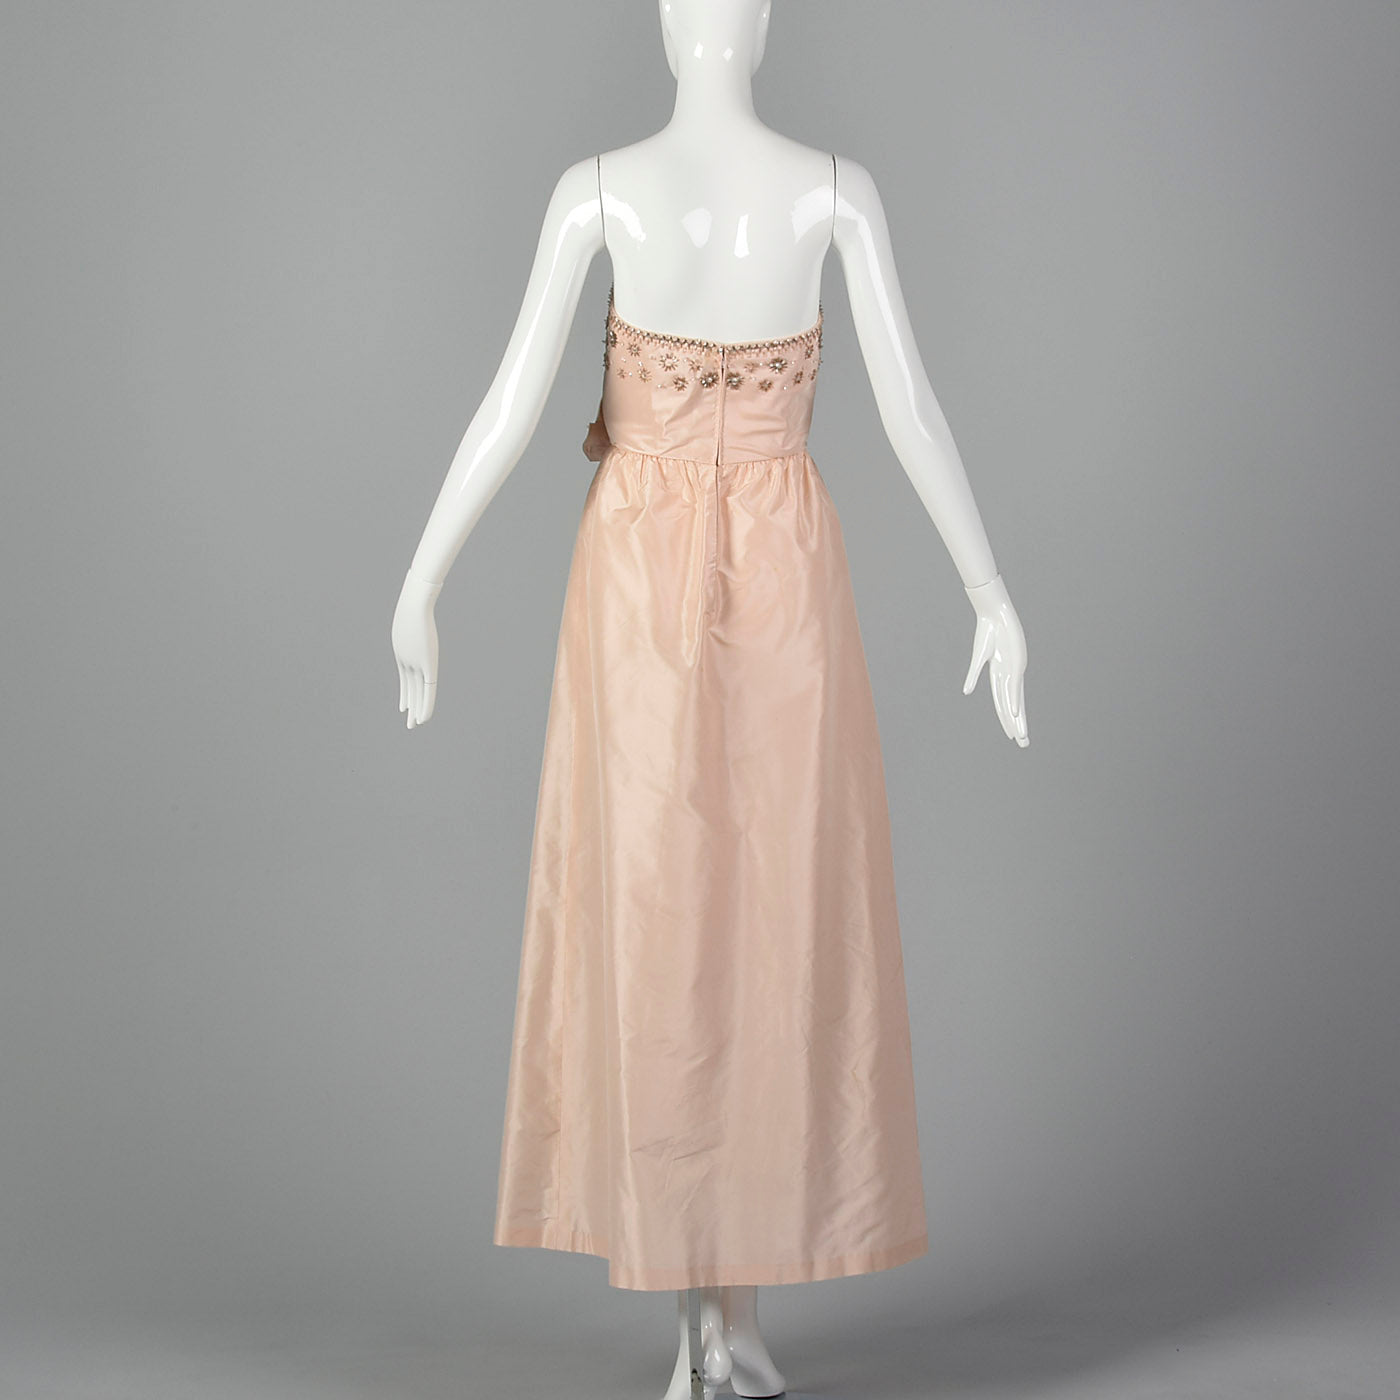 1960s Pale Pink Evening Gown with Beaded Bodice